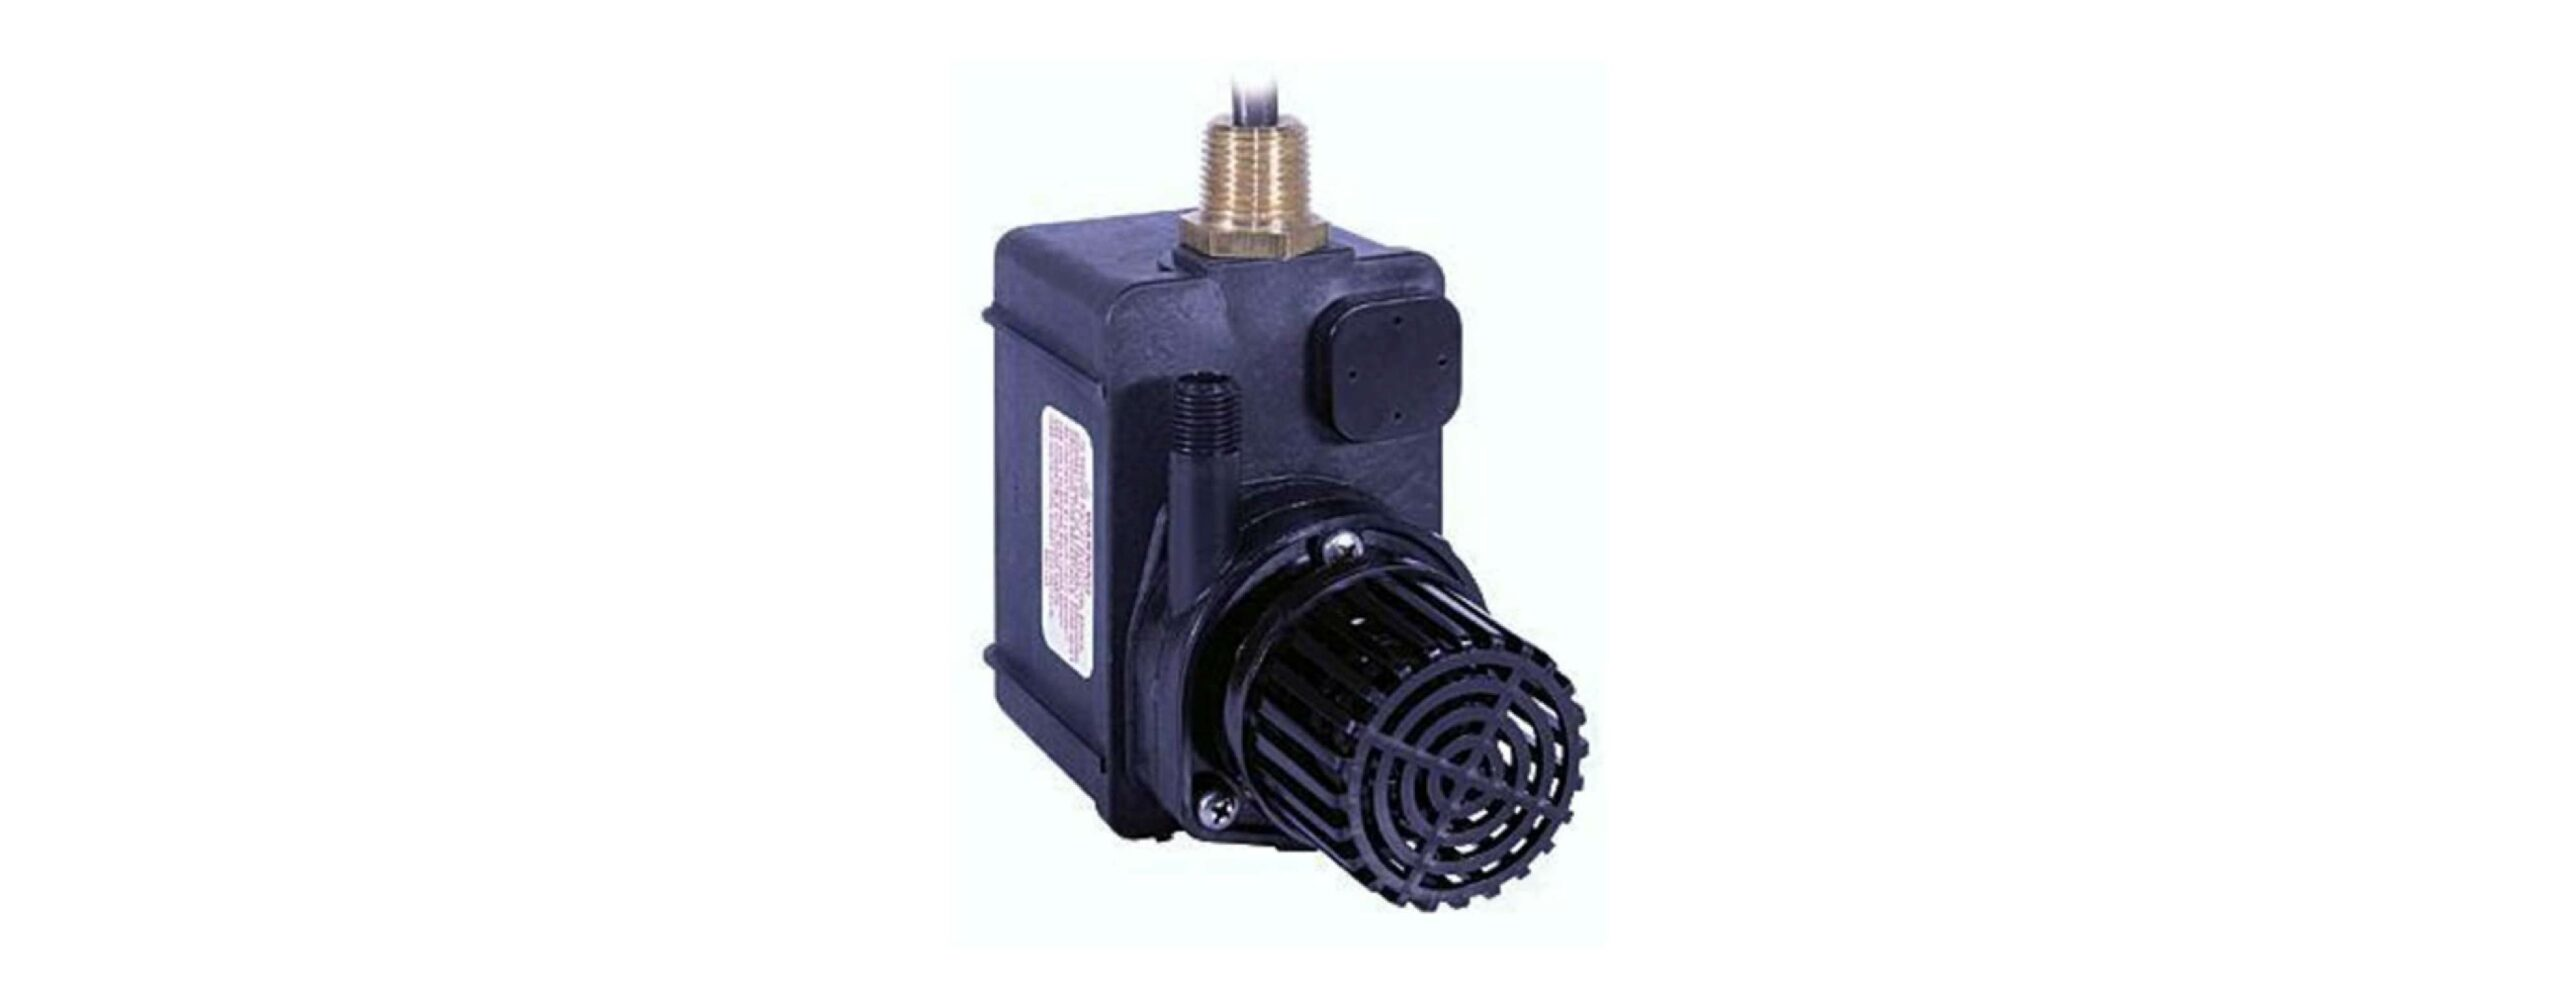 Little Giant Submersible Parts Washer Pump